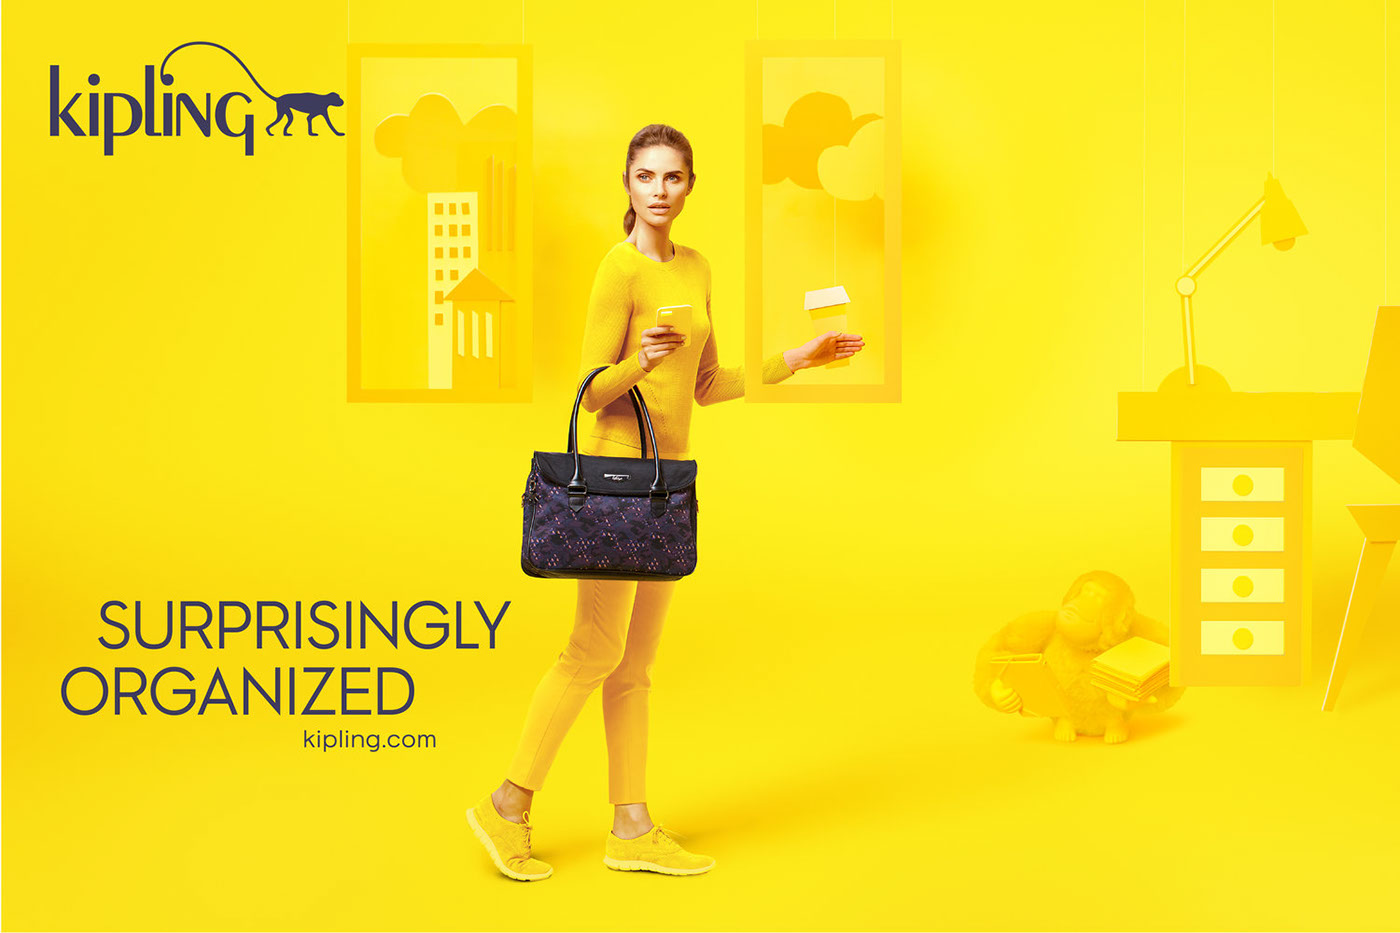 Best Sale! Kipling  Big Save. None Coupon Code. Up to 70% off Outlet Styles